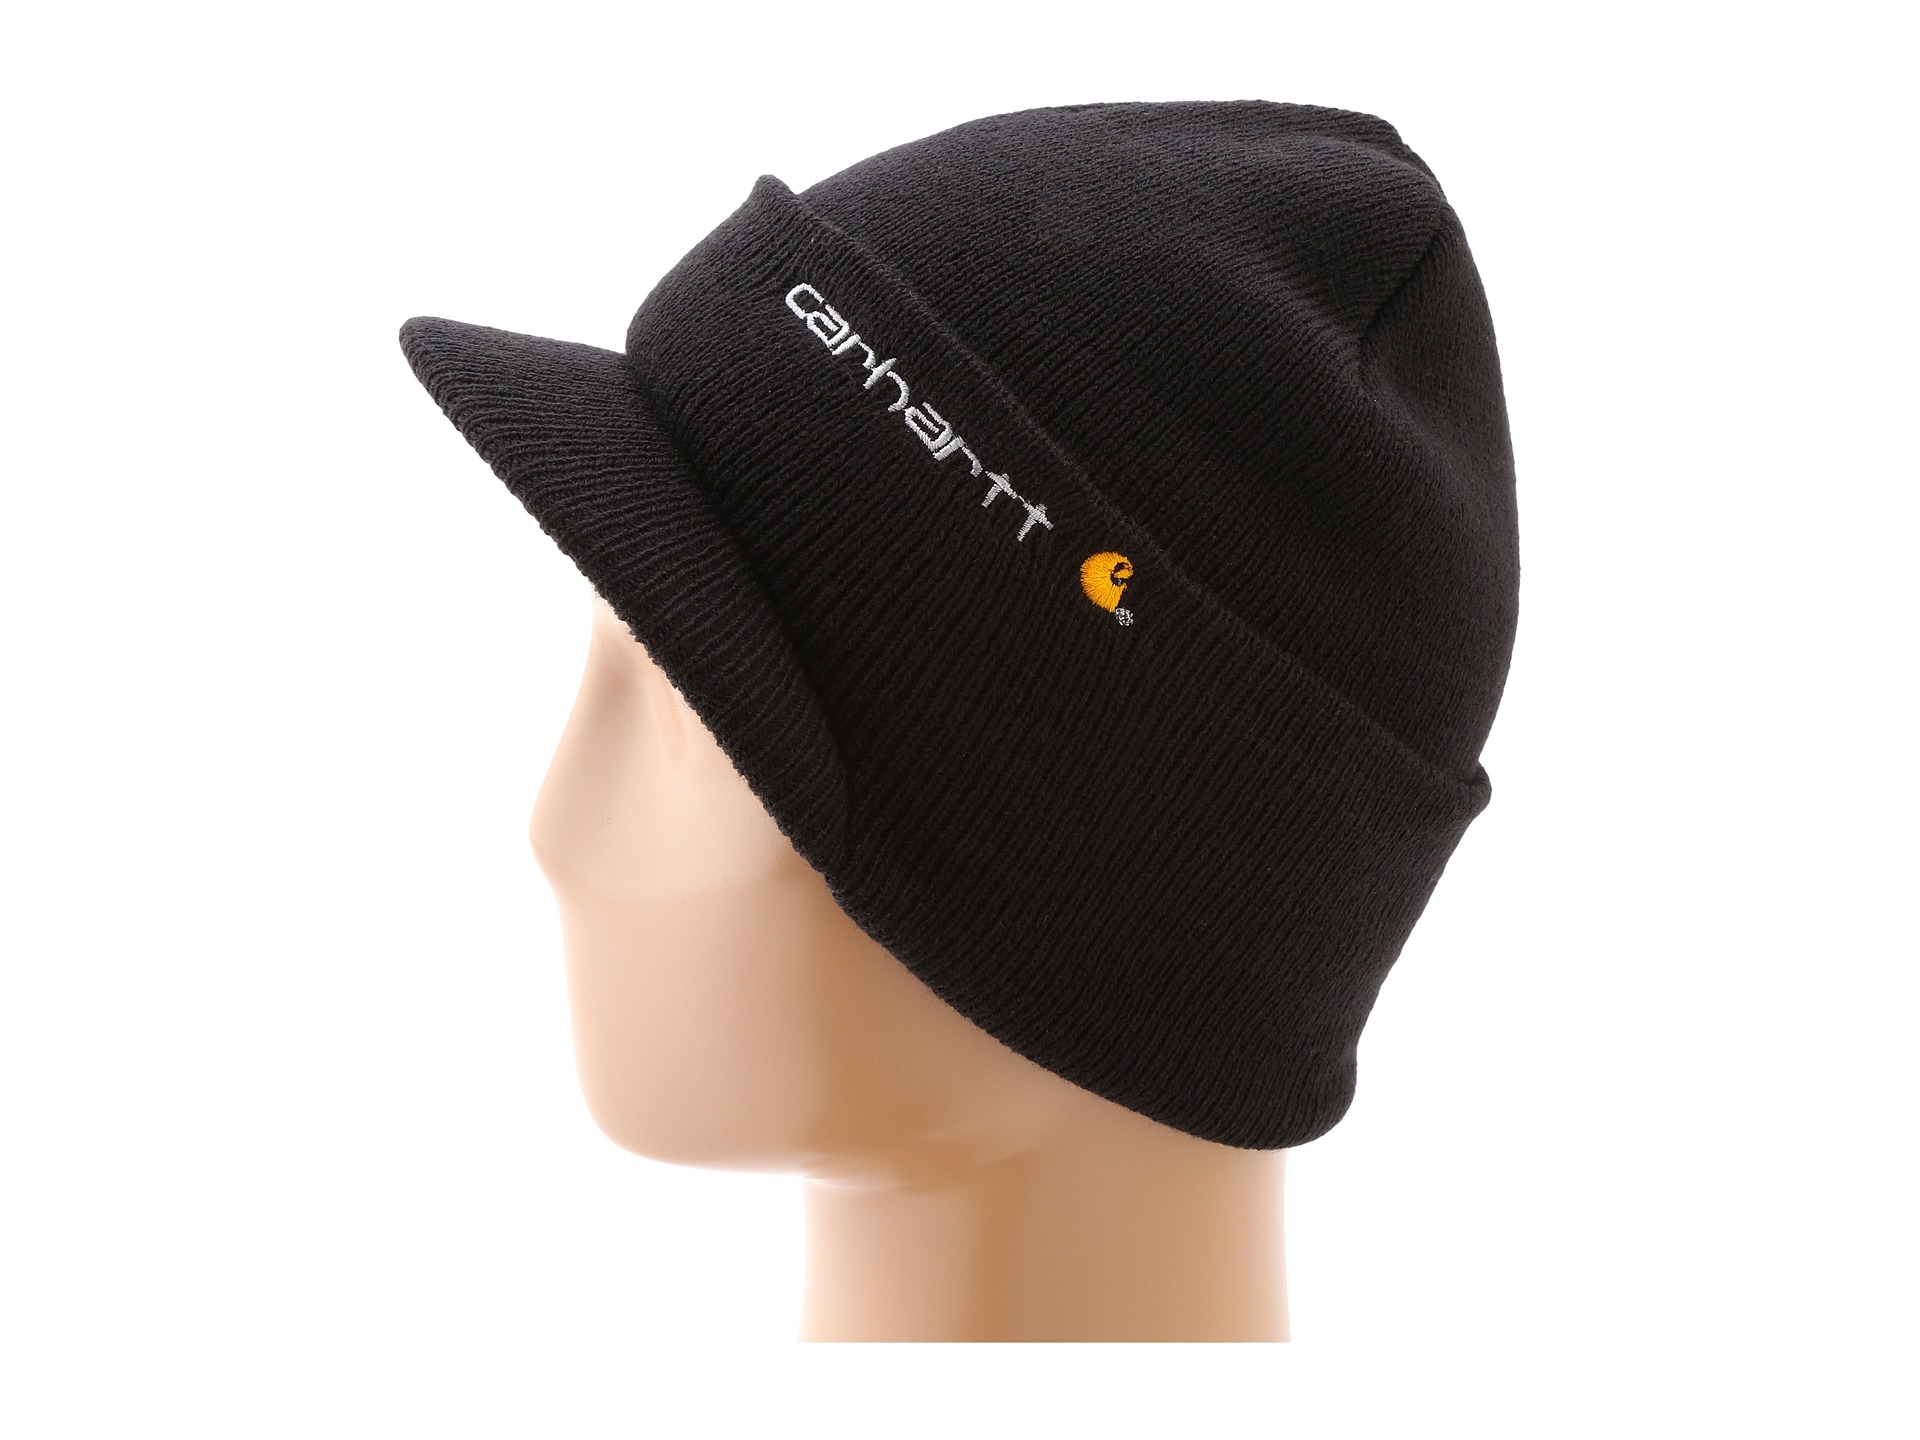 6ced20904ea Lyst - Carhartt Knit Hat With Visor in Black for Men